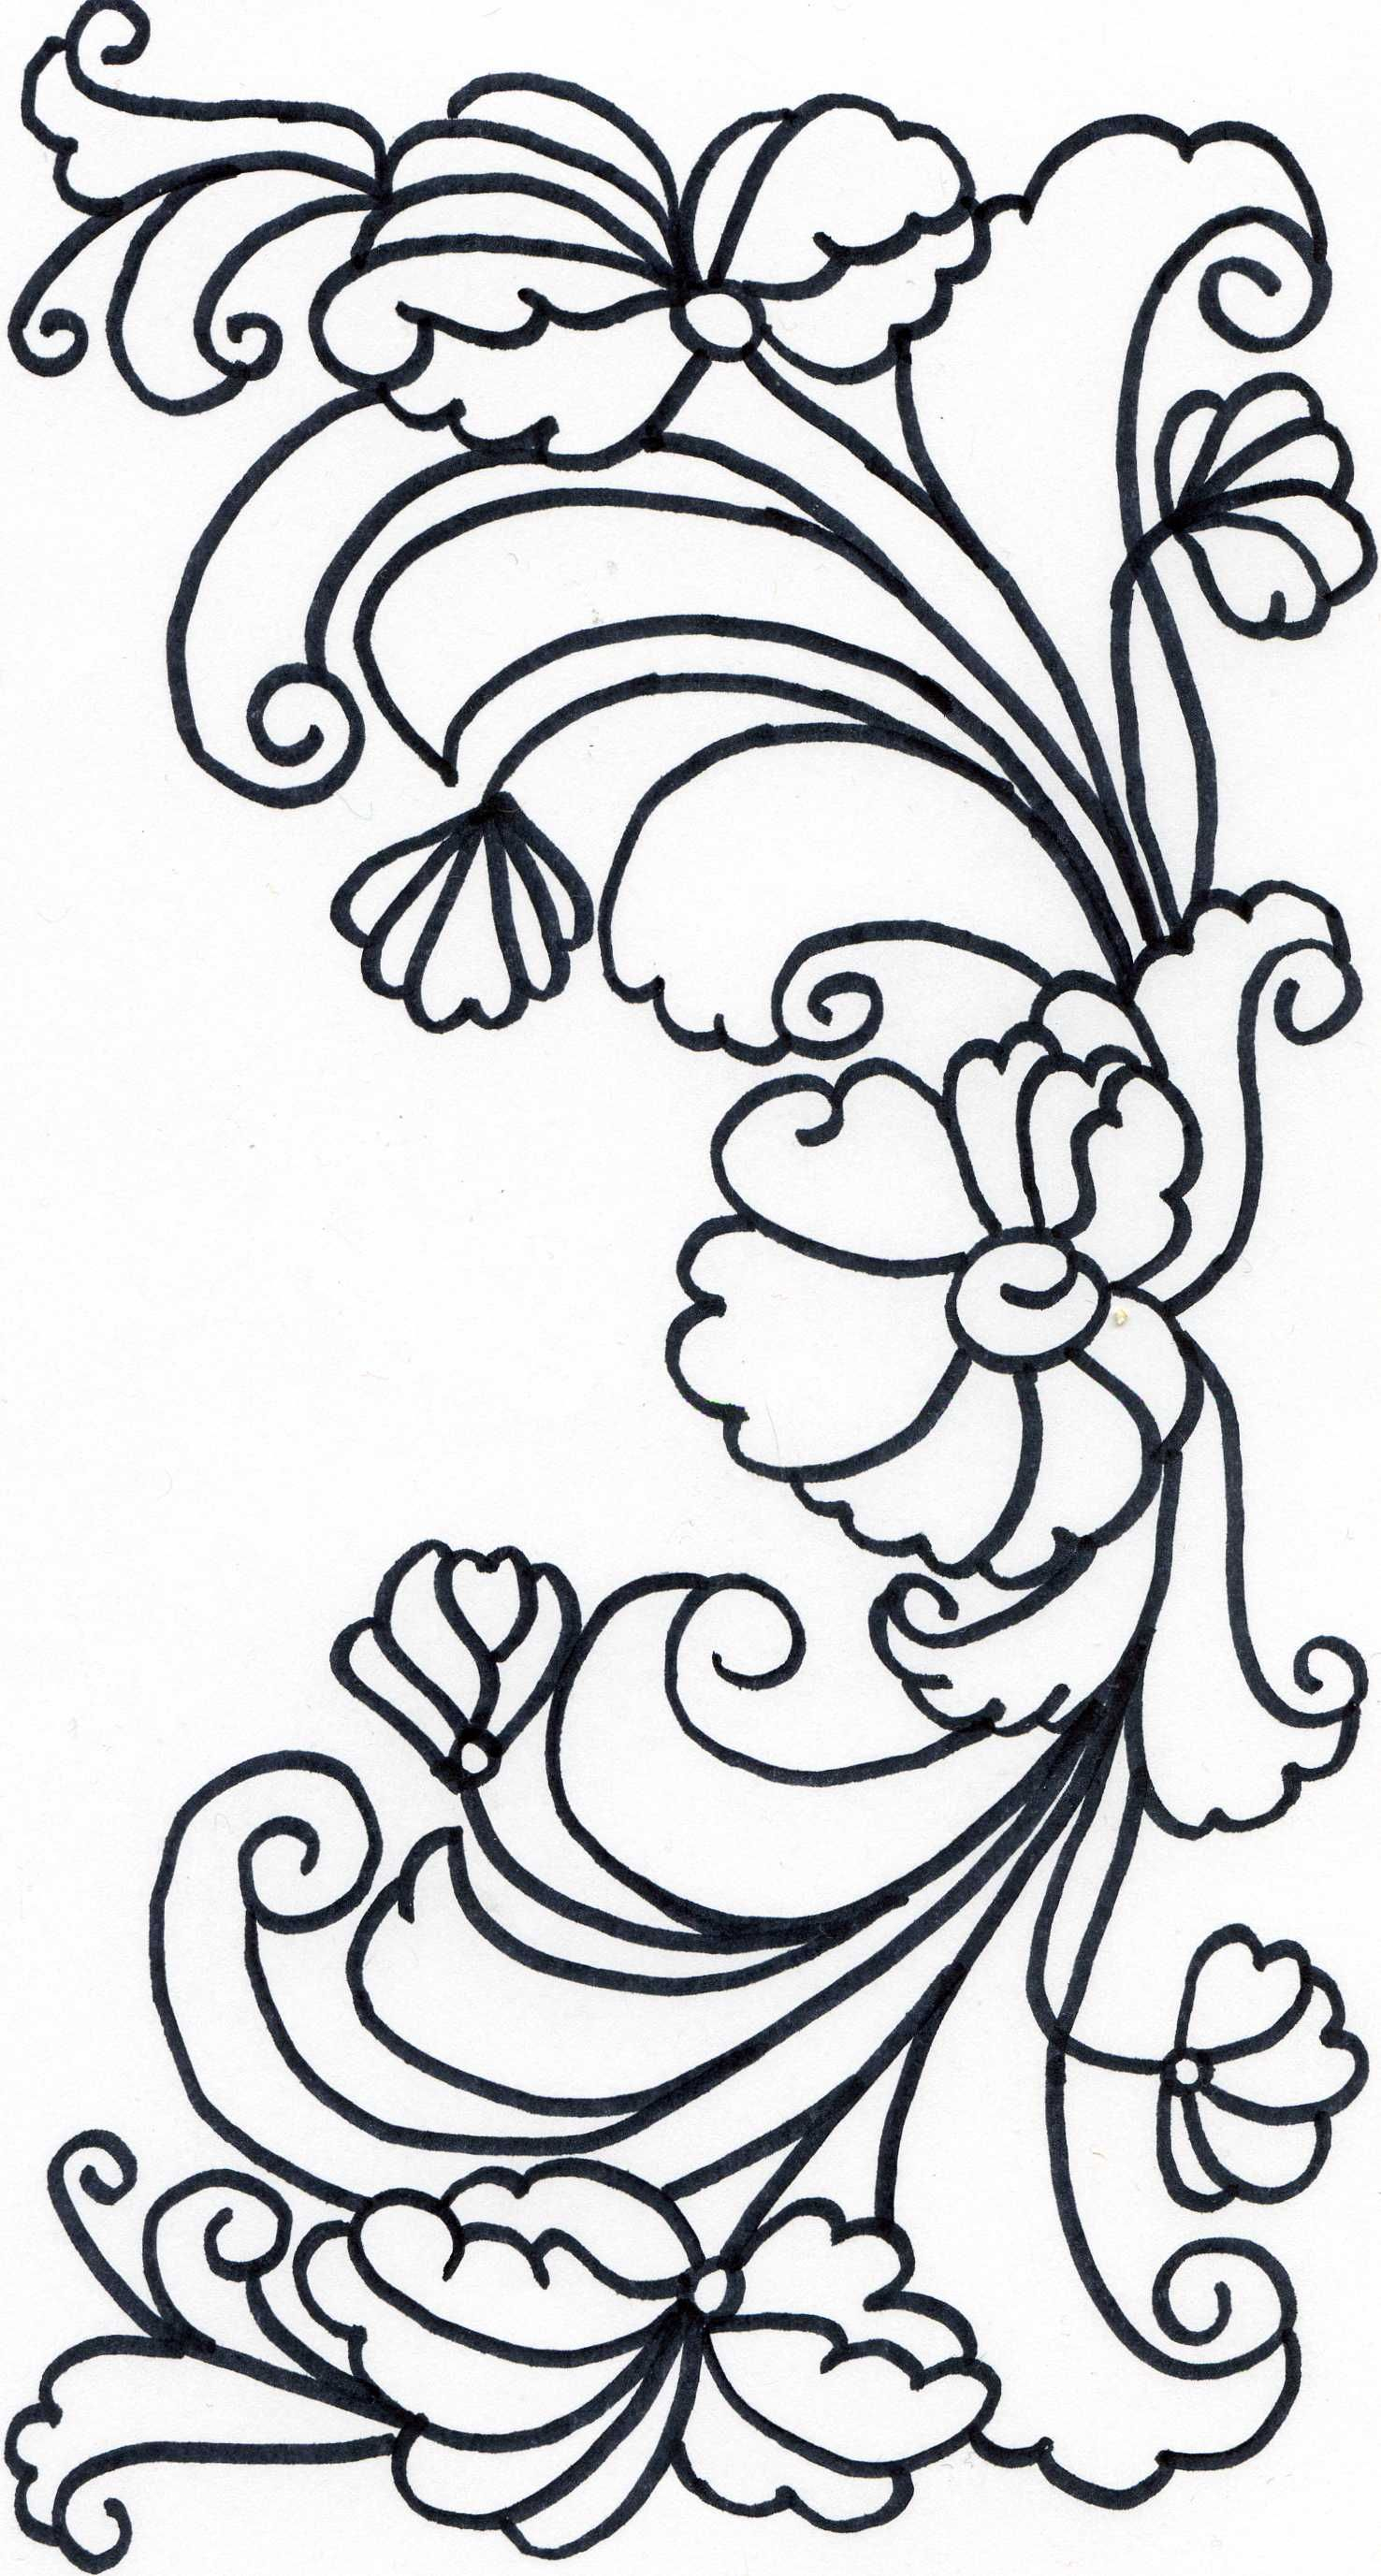 Coloring pages for donna flor - I Encourage Coloring Pages To Be Set Out When You Read The Stories In The Children S